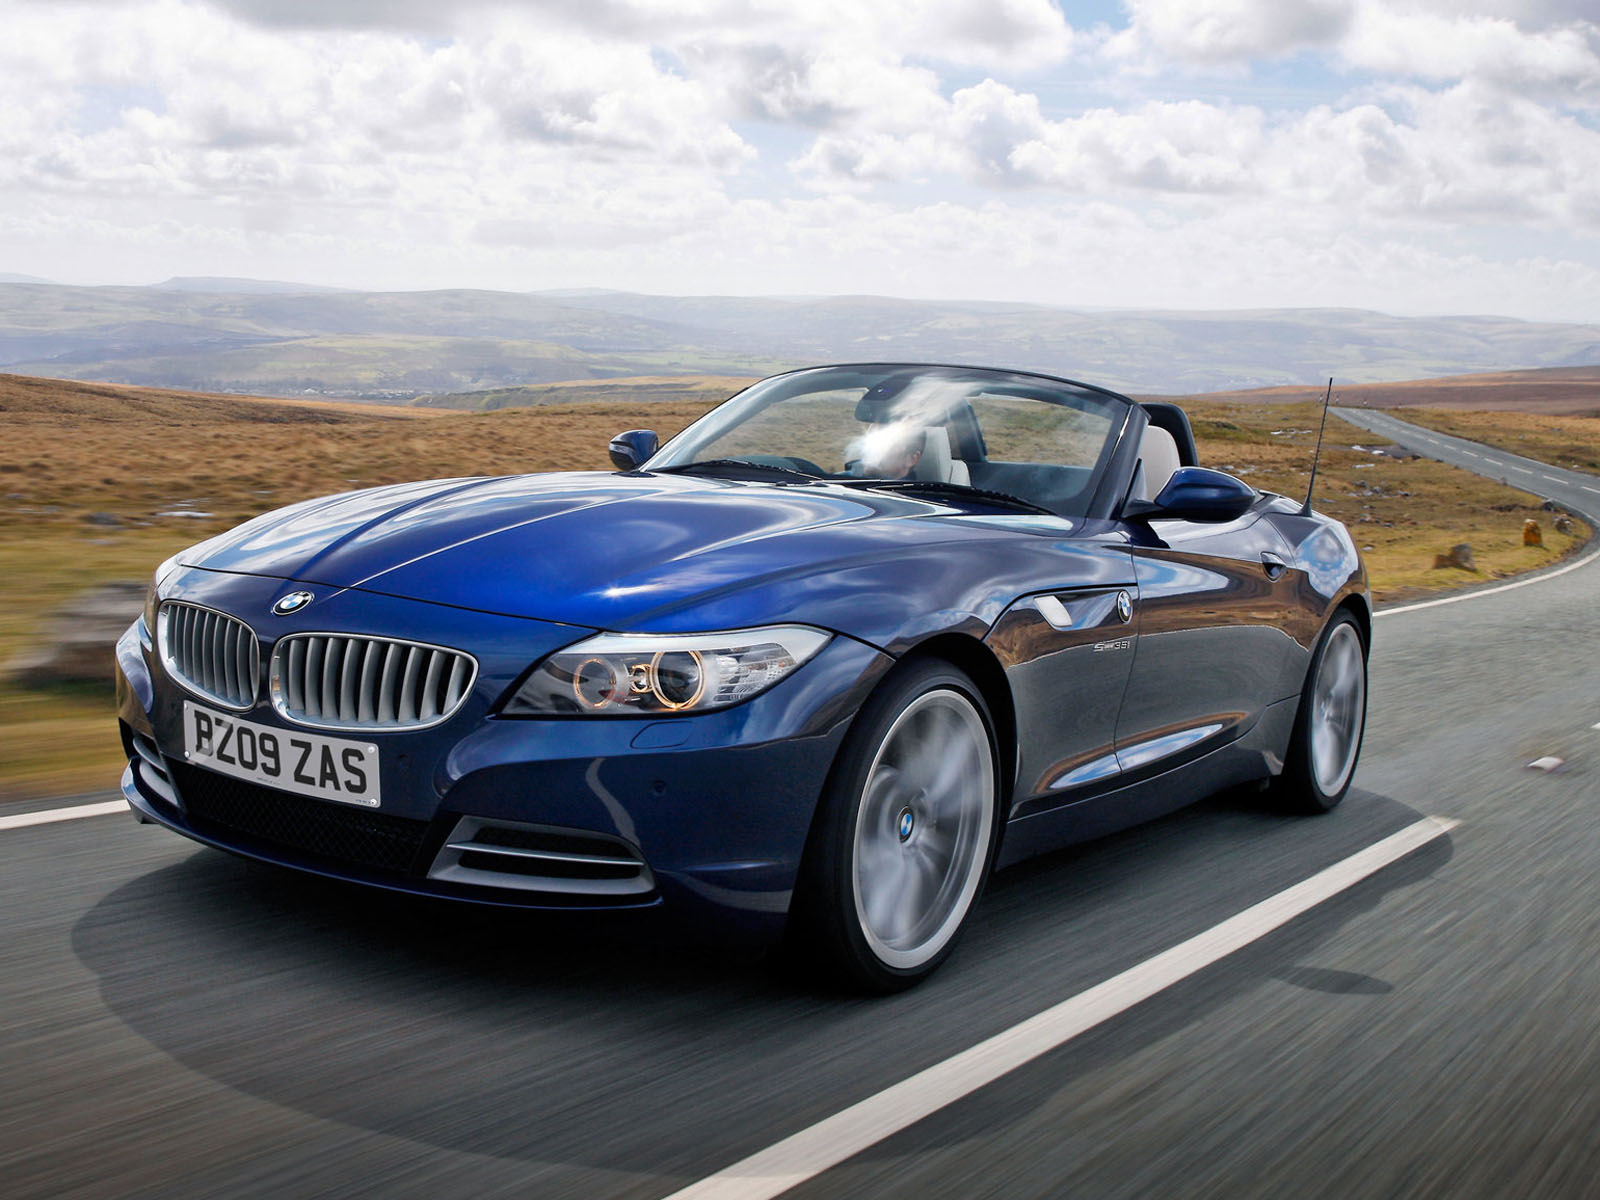 Auto Zone For Speed Lovers: Convertible Sports Cars